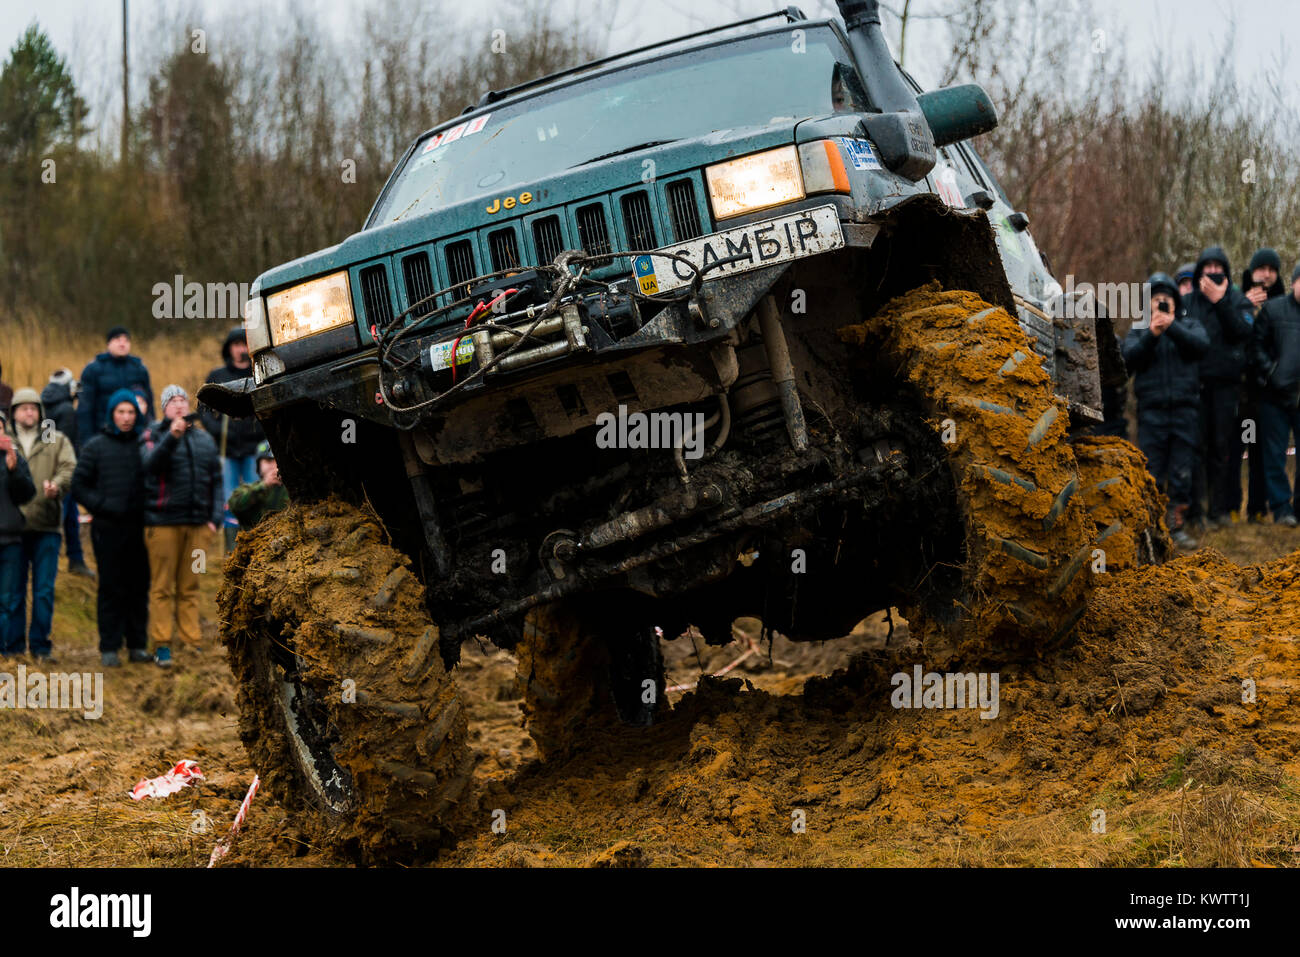 Lviv, Ukraine - February 21, 2016: Off-road vehicle brand